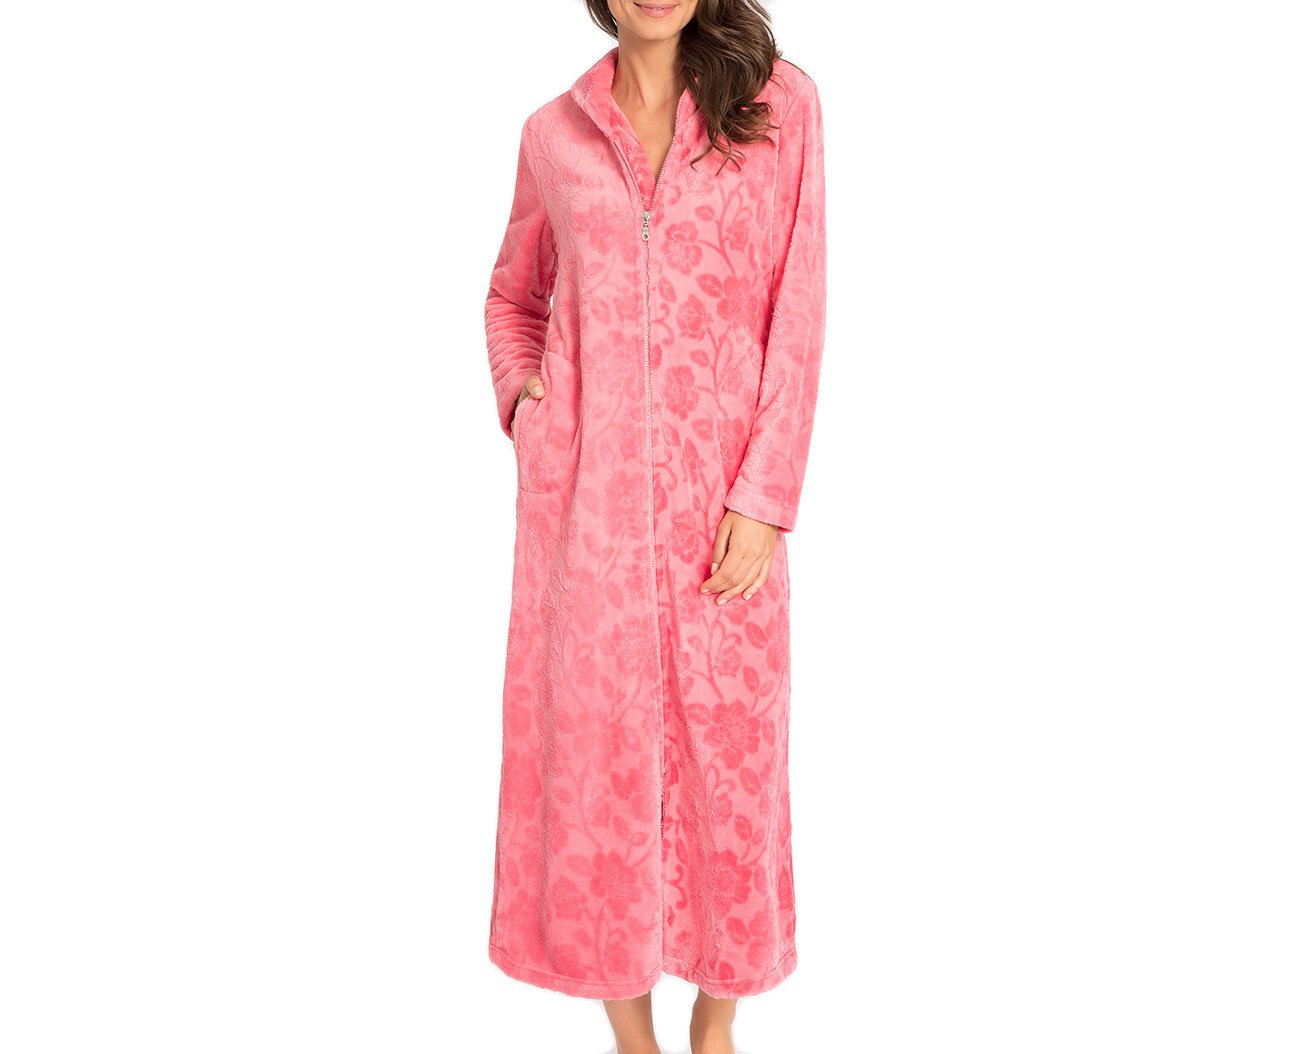 Taubert Roxane Robe English Rose 110 cm szlafrok